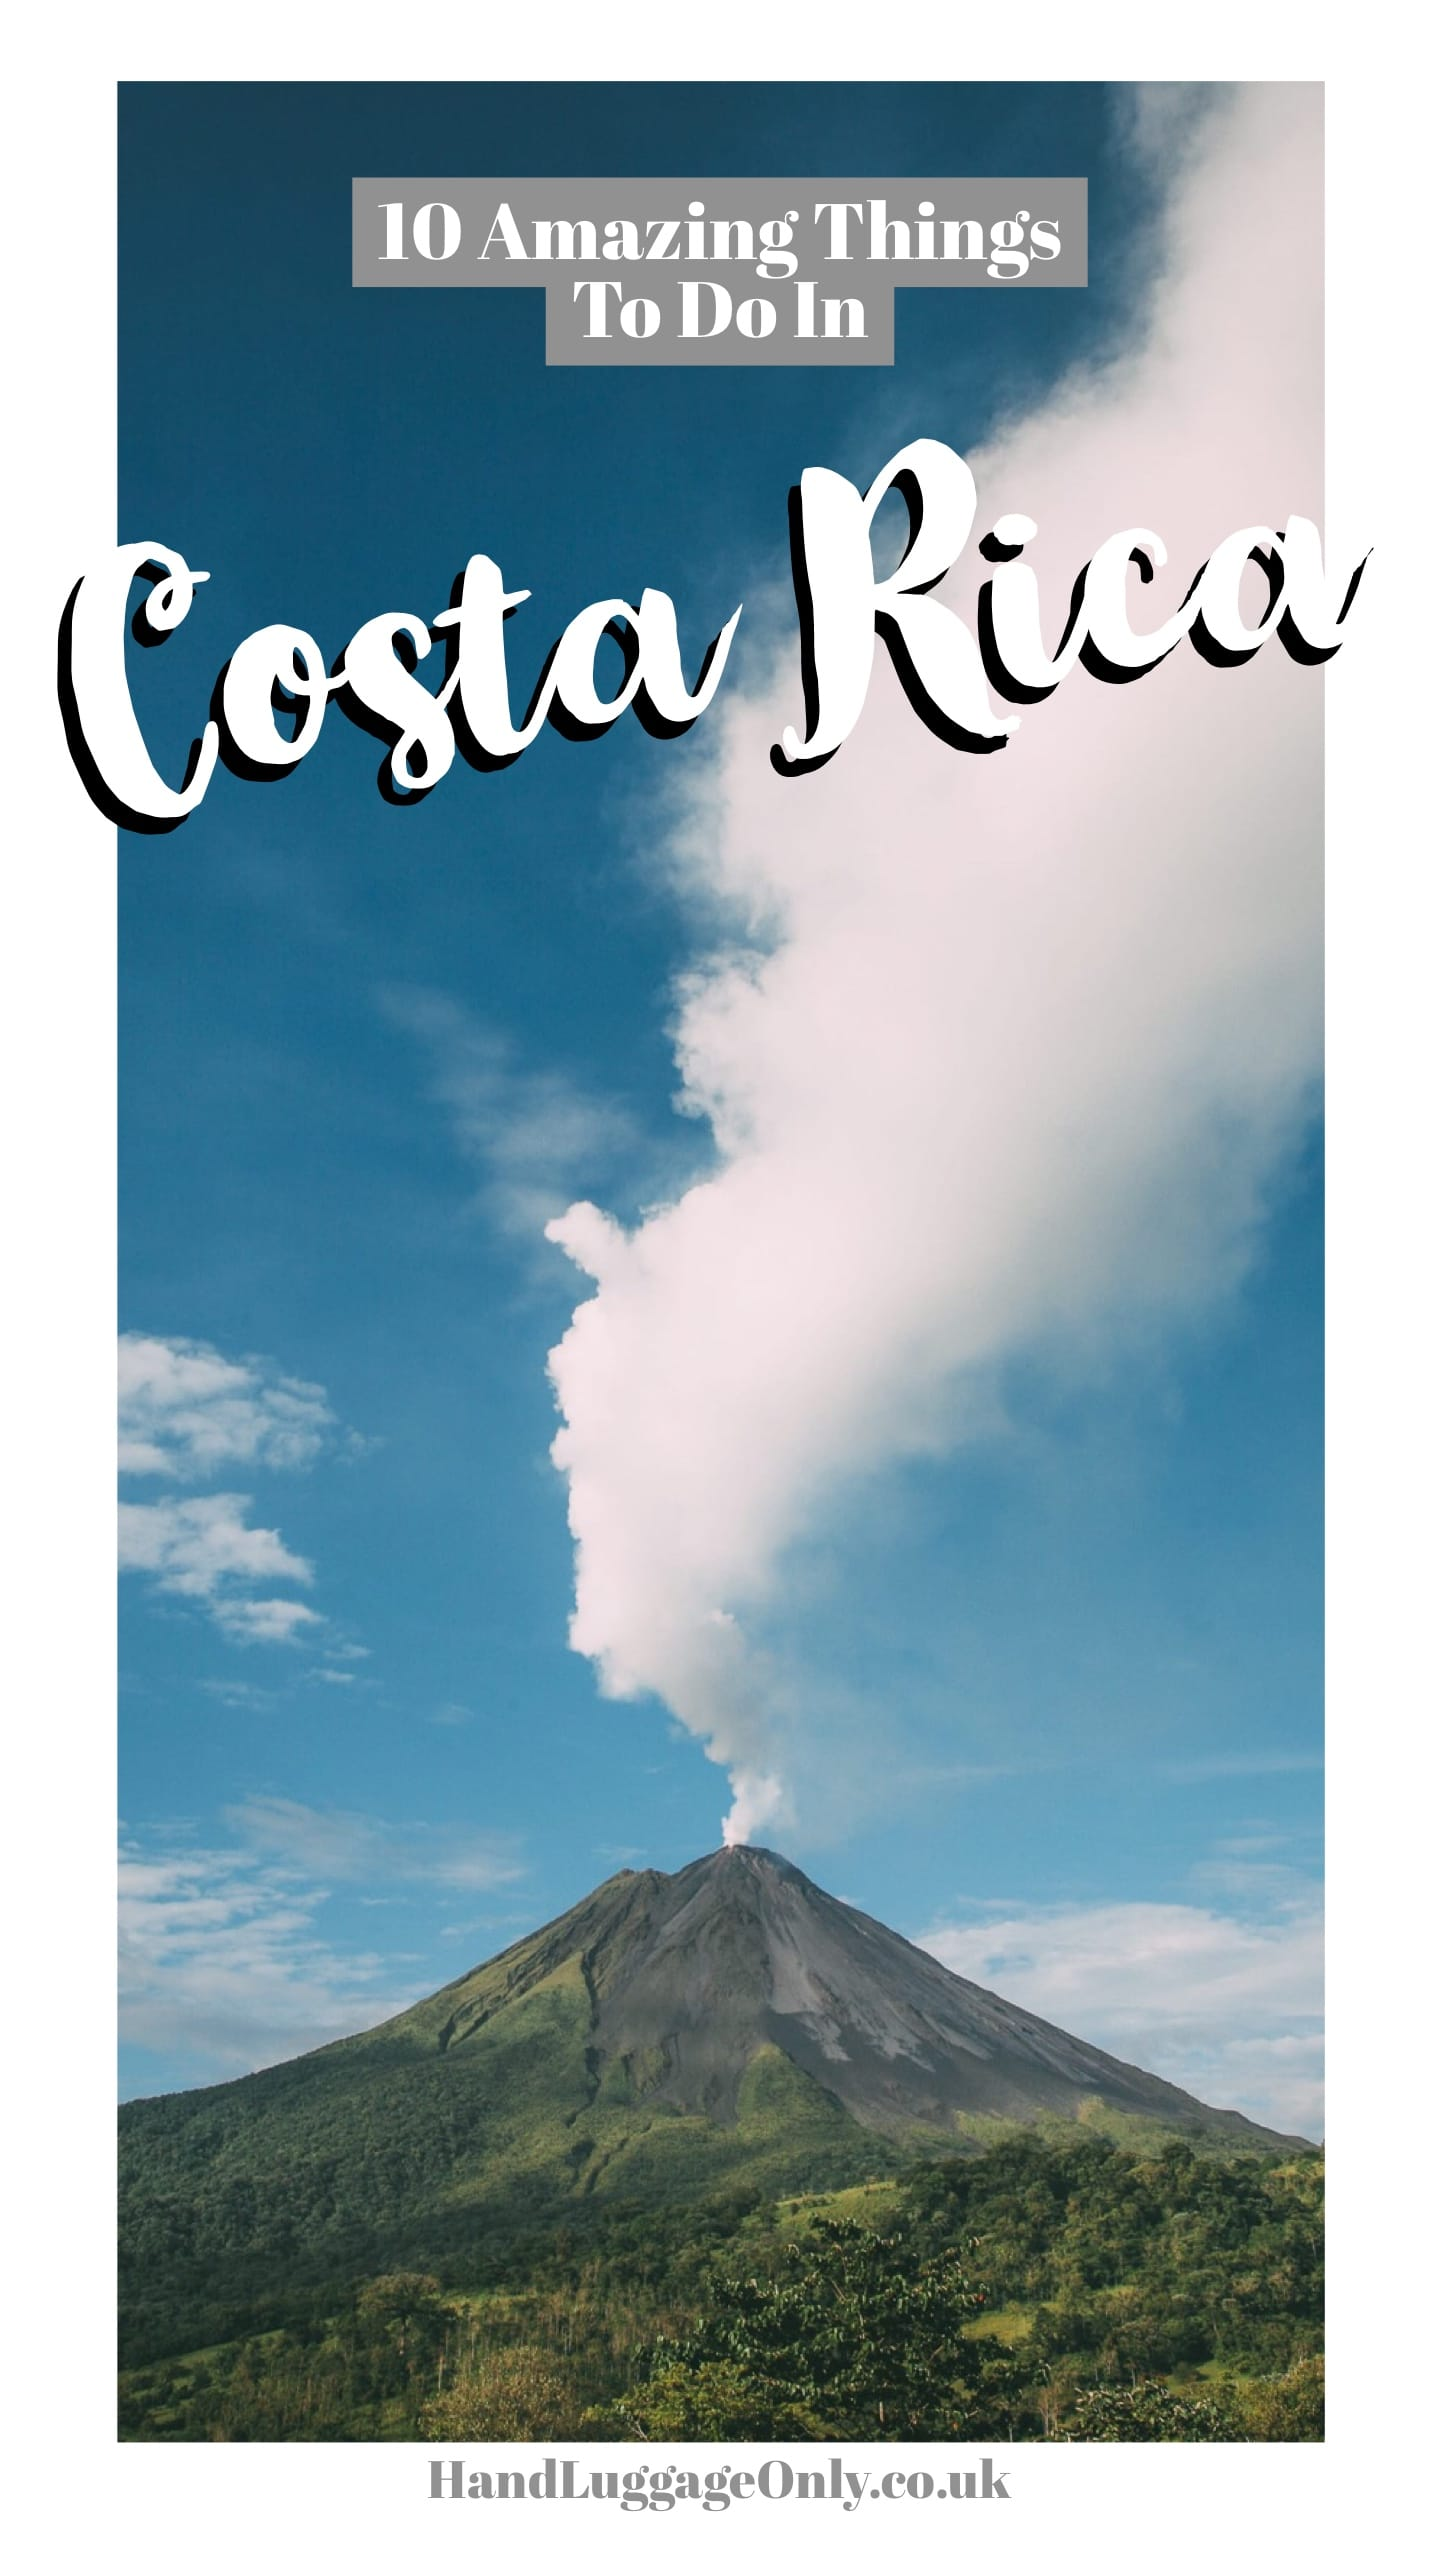 10 Amazing Things To Do In Costa Rica (1)